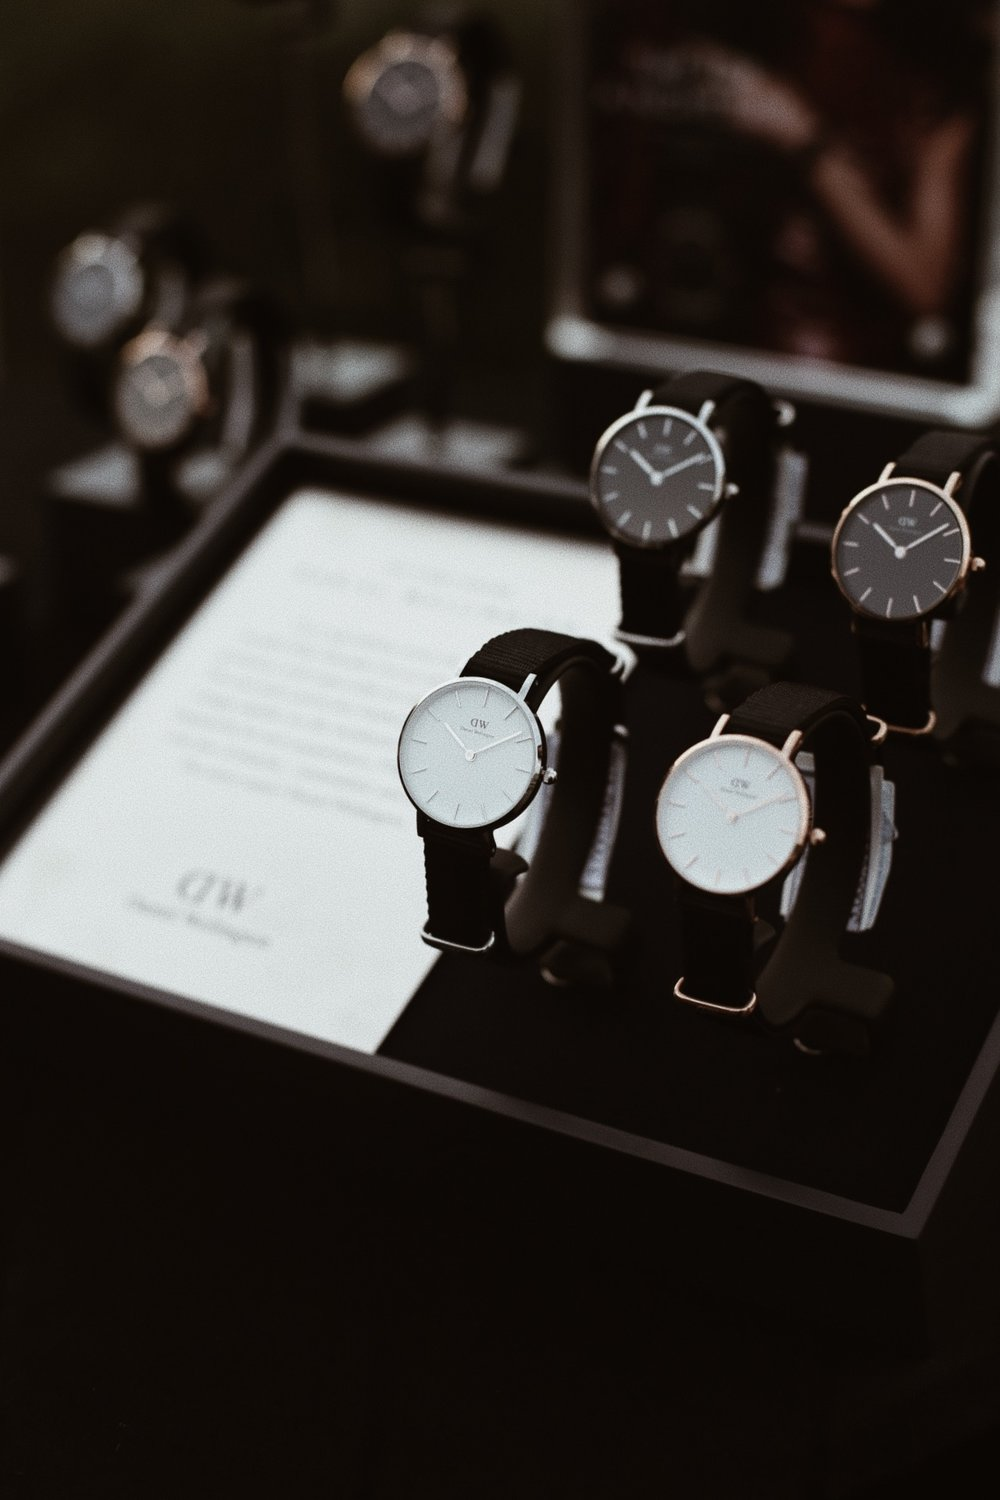 What's The Difference Between A Cheap Watch And An Expensive Watch?